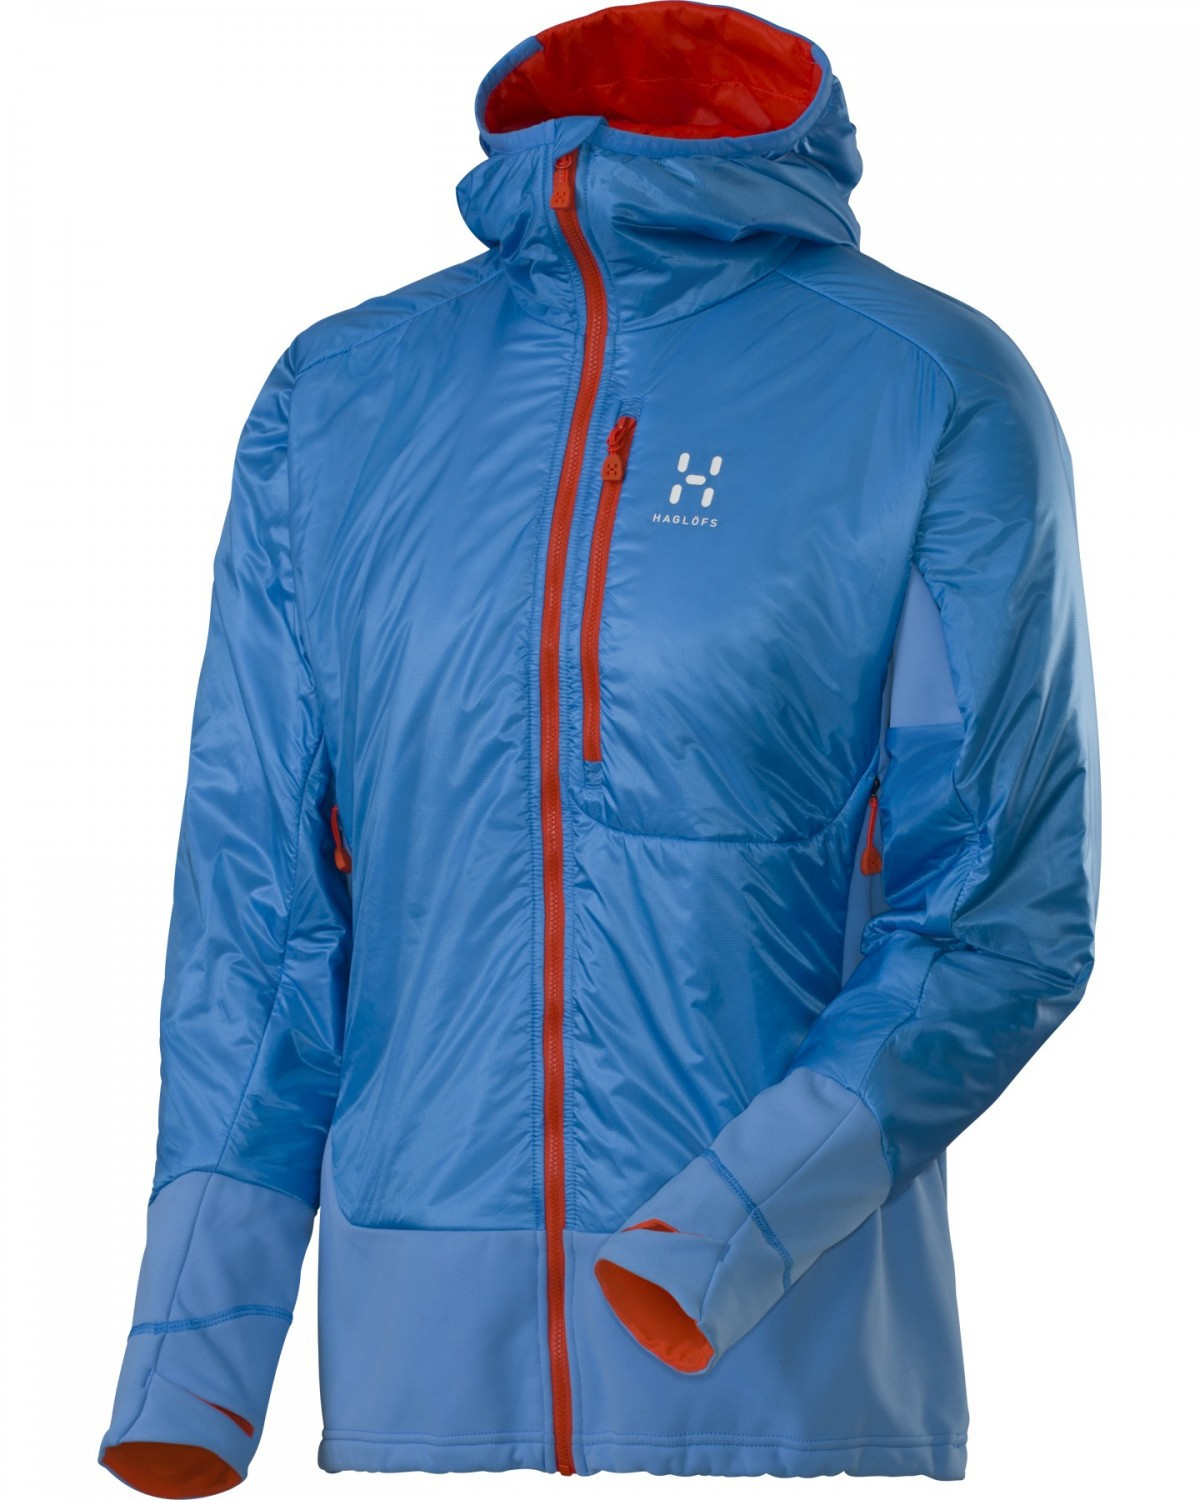 Haglofs Rando Barrier Jacket Aero Blue-30